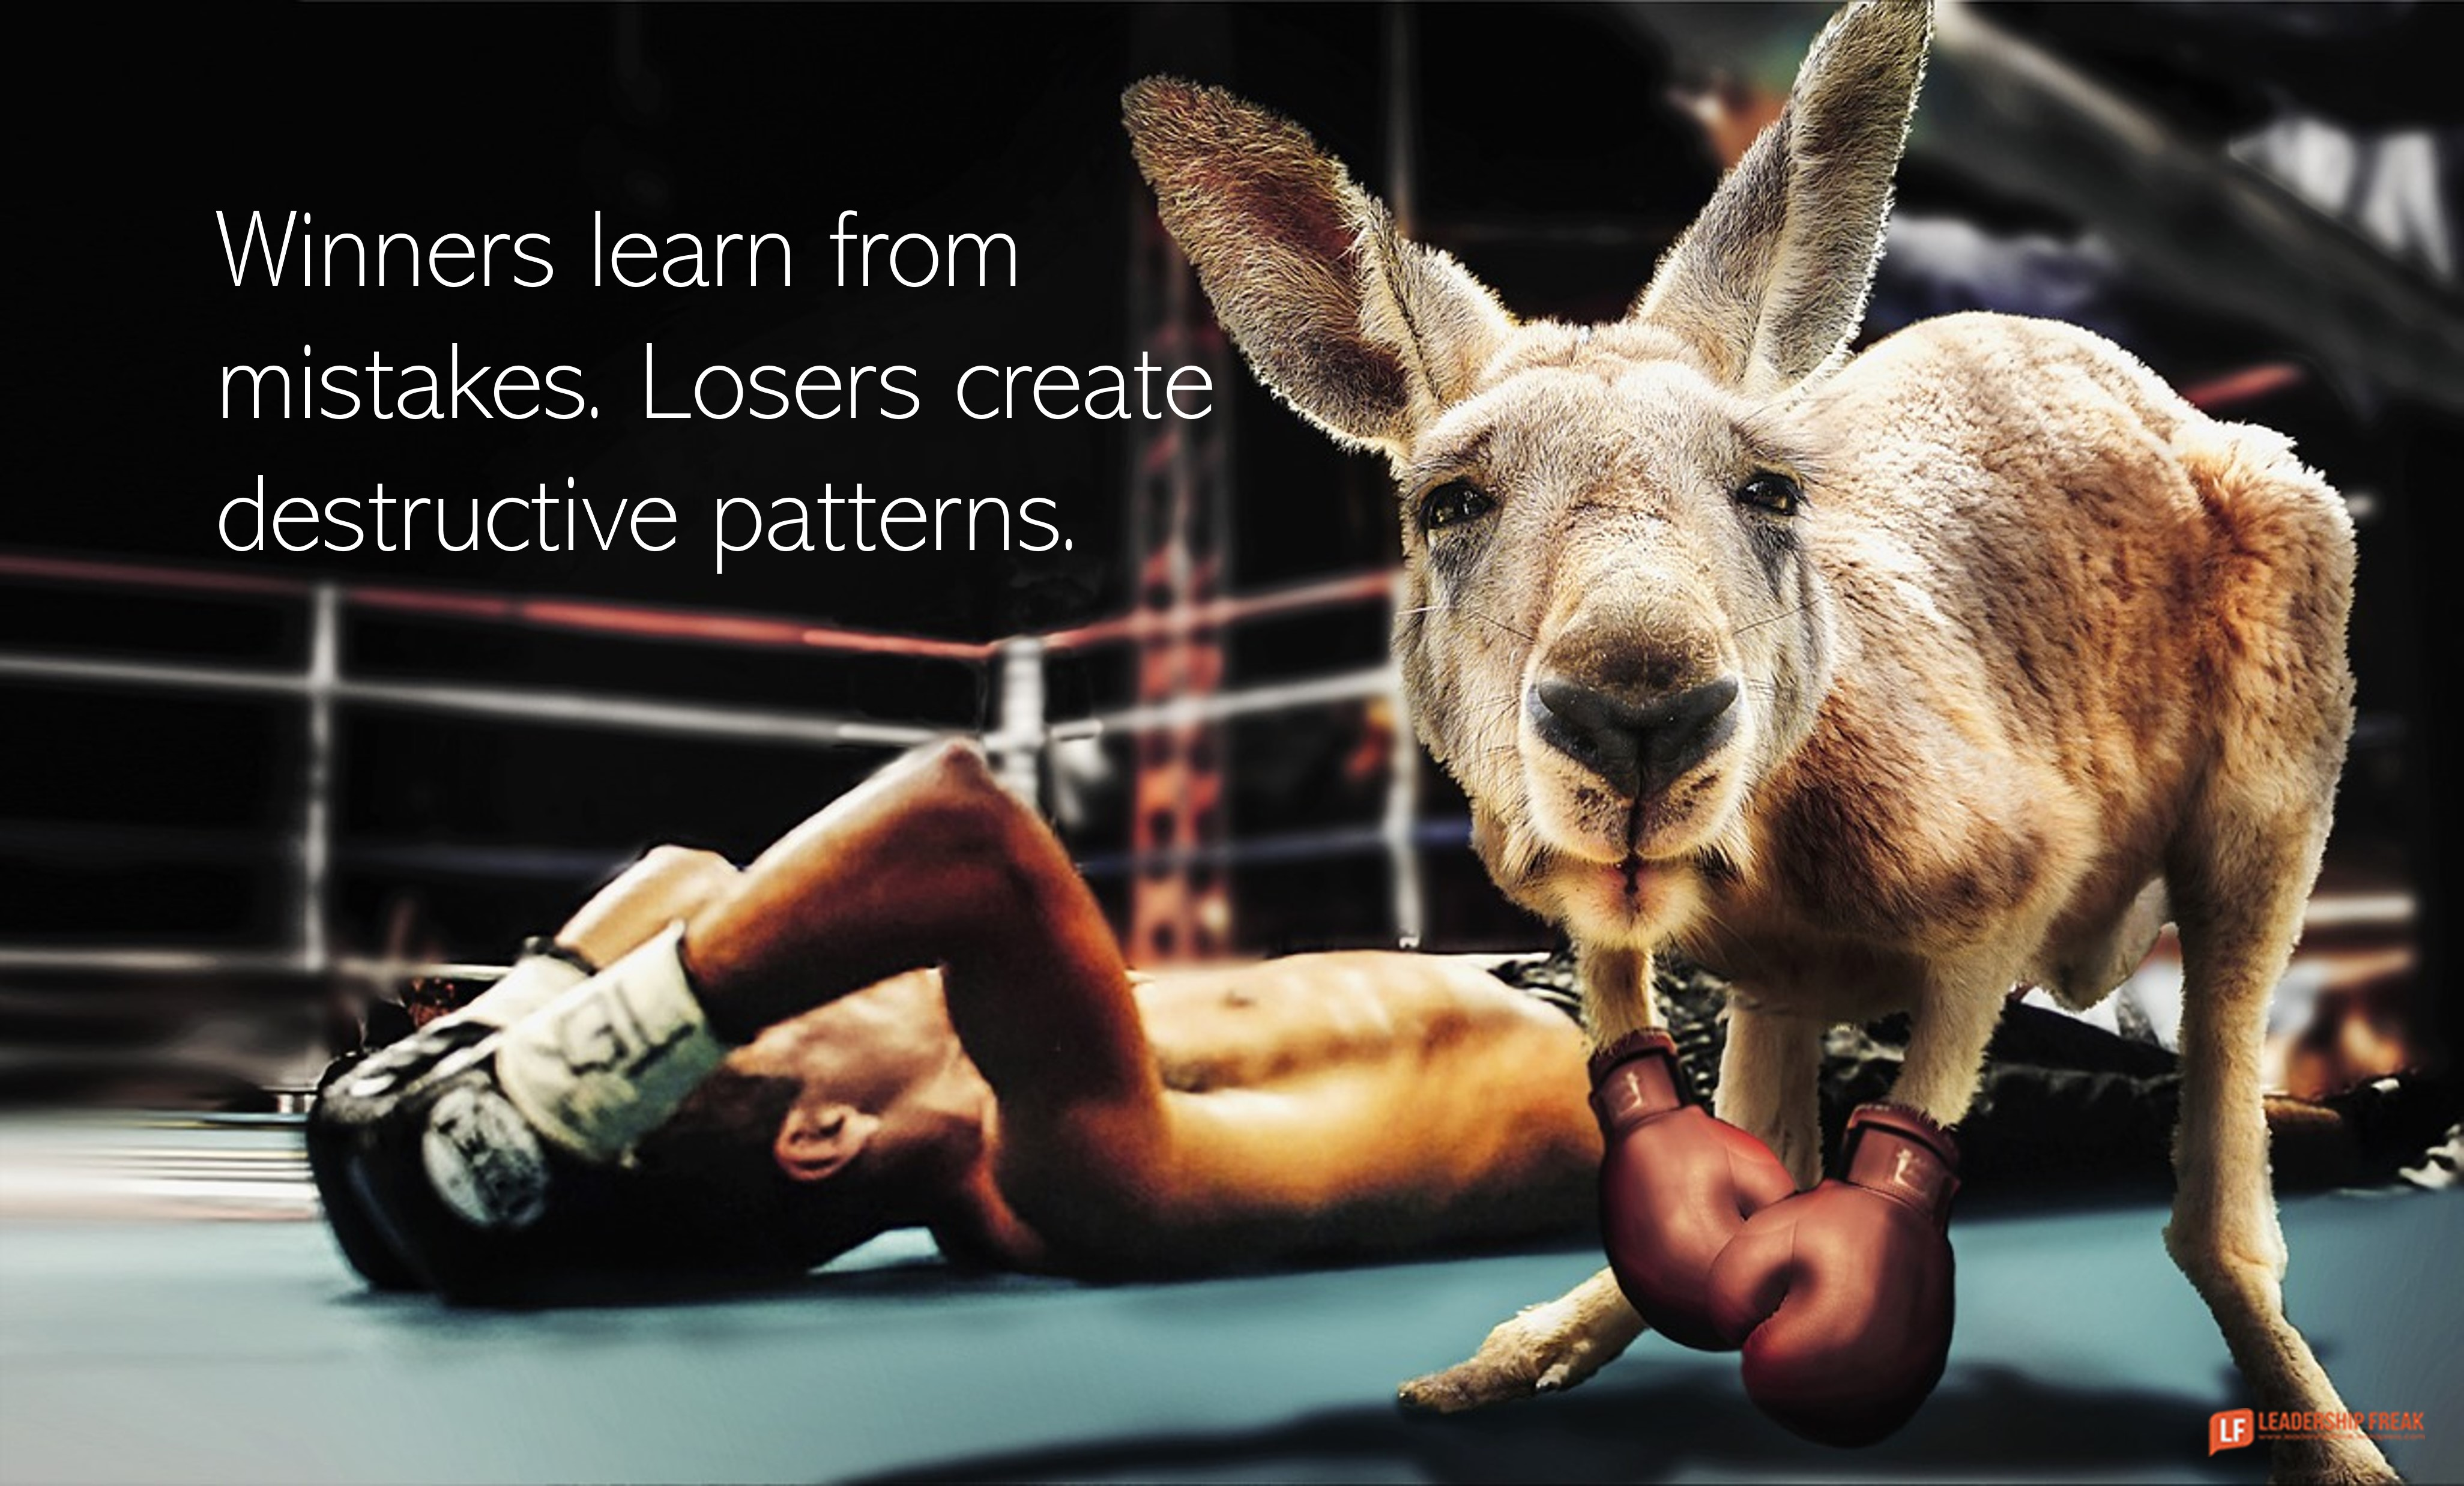 Kangaroo knocks out boxer.  Winners learn from mistakes. Losers create destructive patterns.